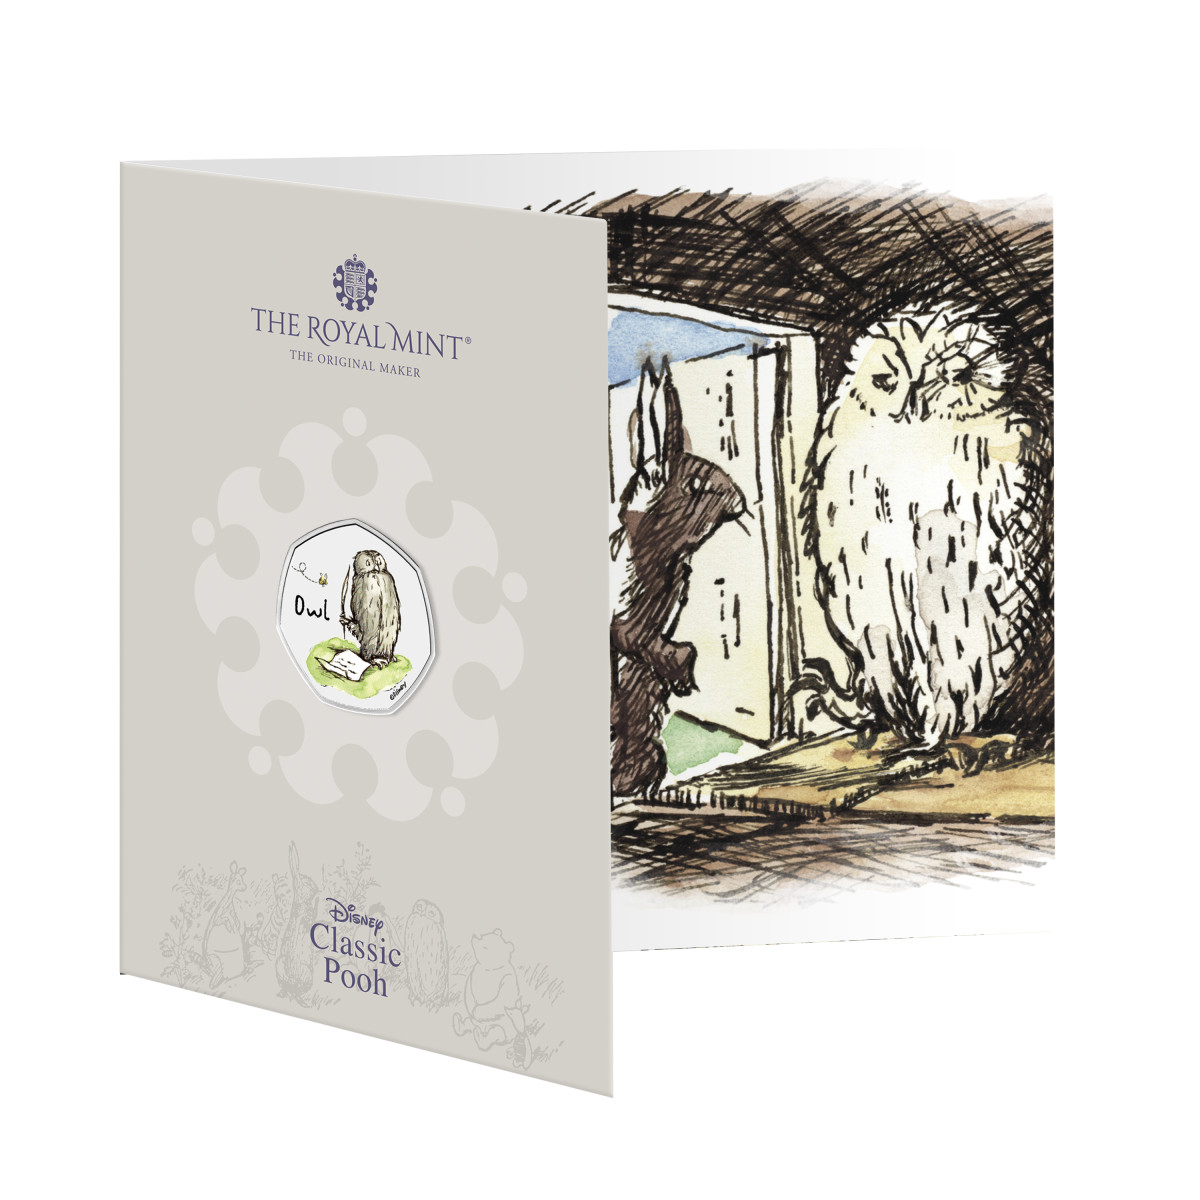 The new Winnie the Pooh Collection Owl 50 pence offers a great trifold card packaging with E.H. Shepard illustrations.